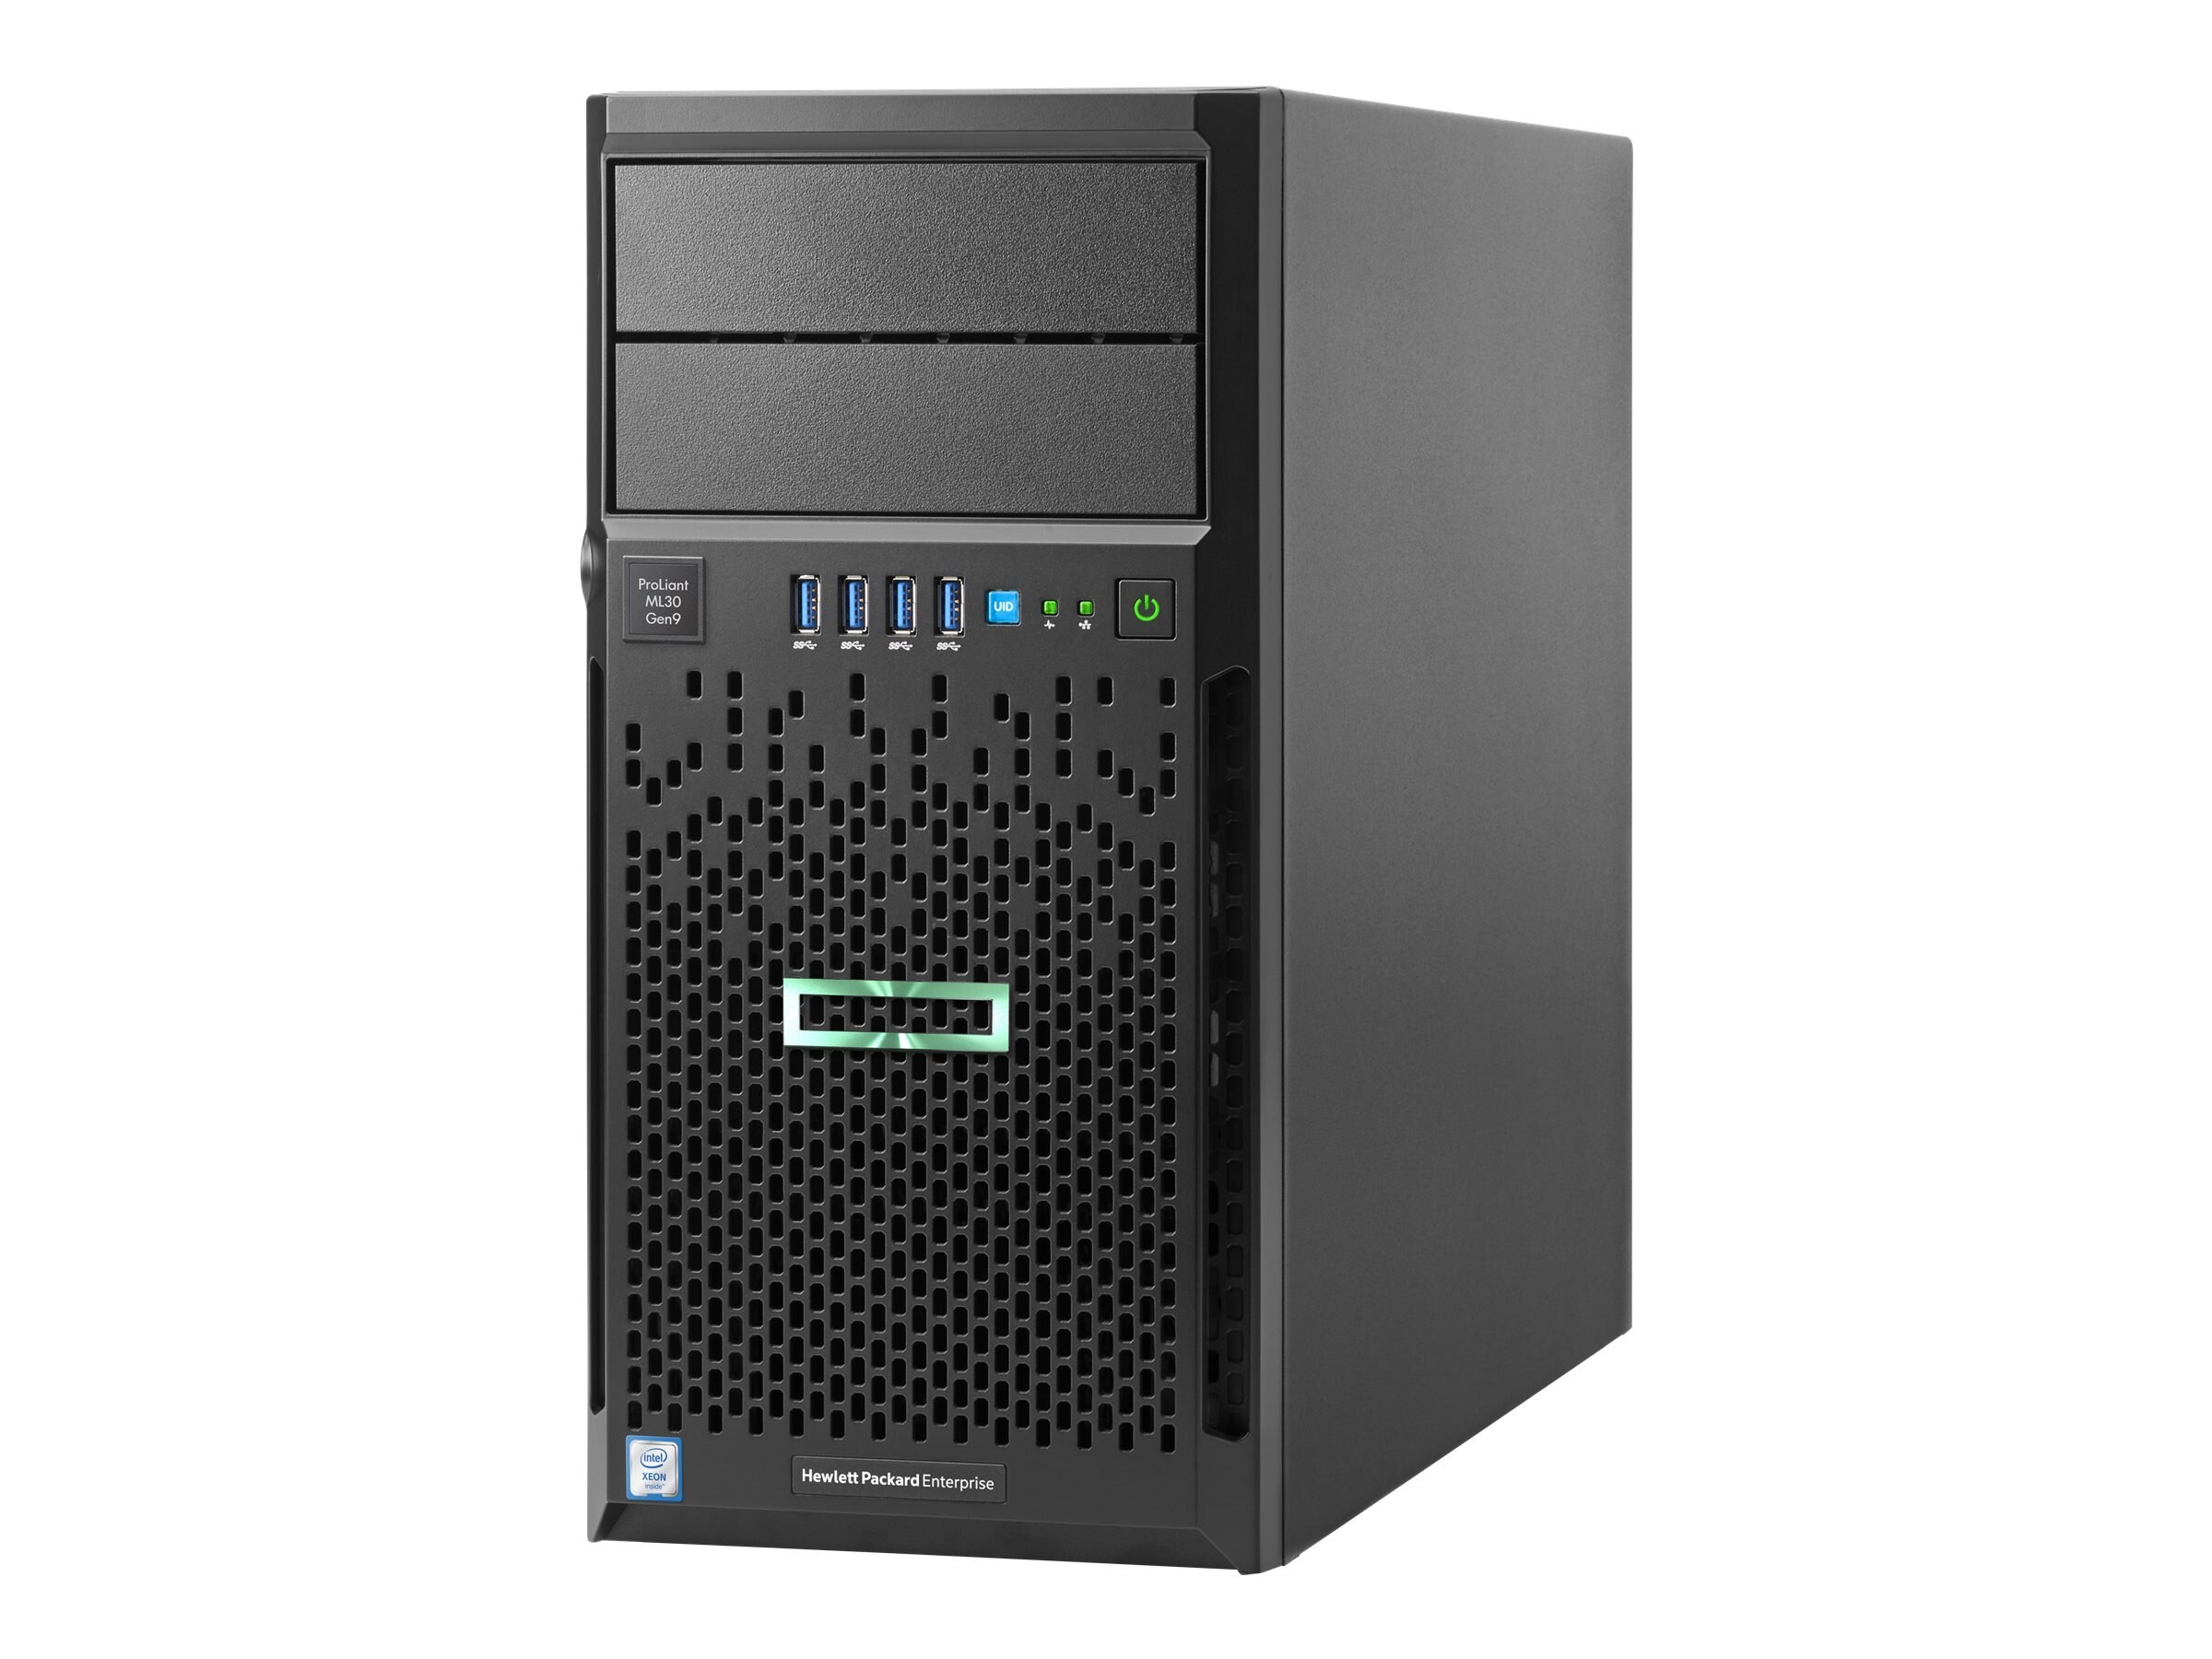 HPE ProLiant ML30 Gen9 Tower Xeon QC E3-1220 v5 3.0GHz 4GB 1TB 4x3.5 NHP Bays B140i DVD-RW 2xGbE 350W, 831064-S01, 31936590, Servers